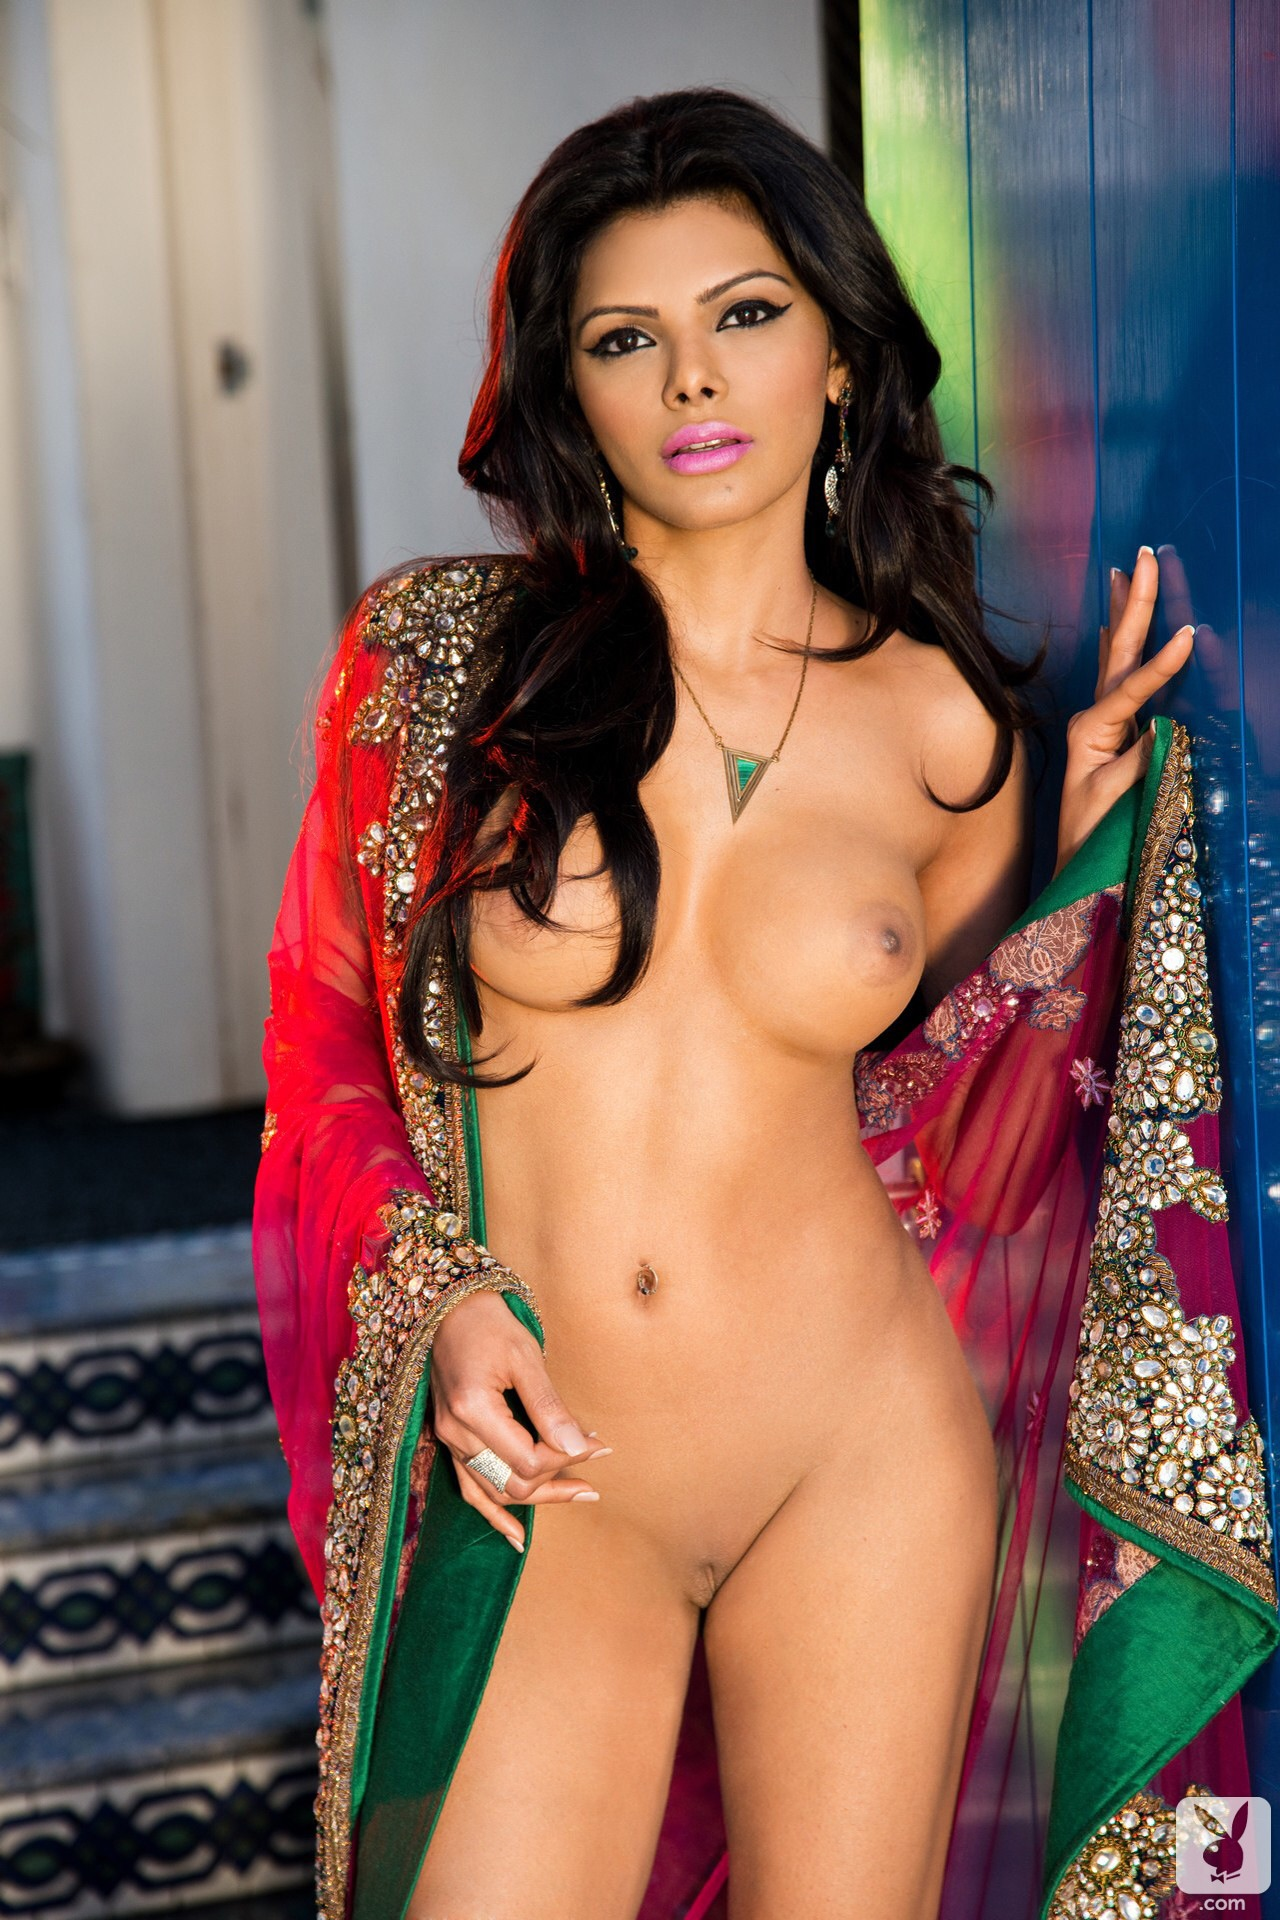 Sherlyn Chopra Playboy Full Set  Ashjokess Blog-6164